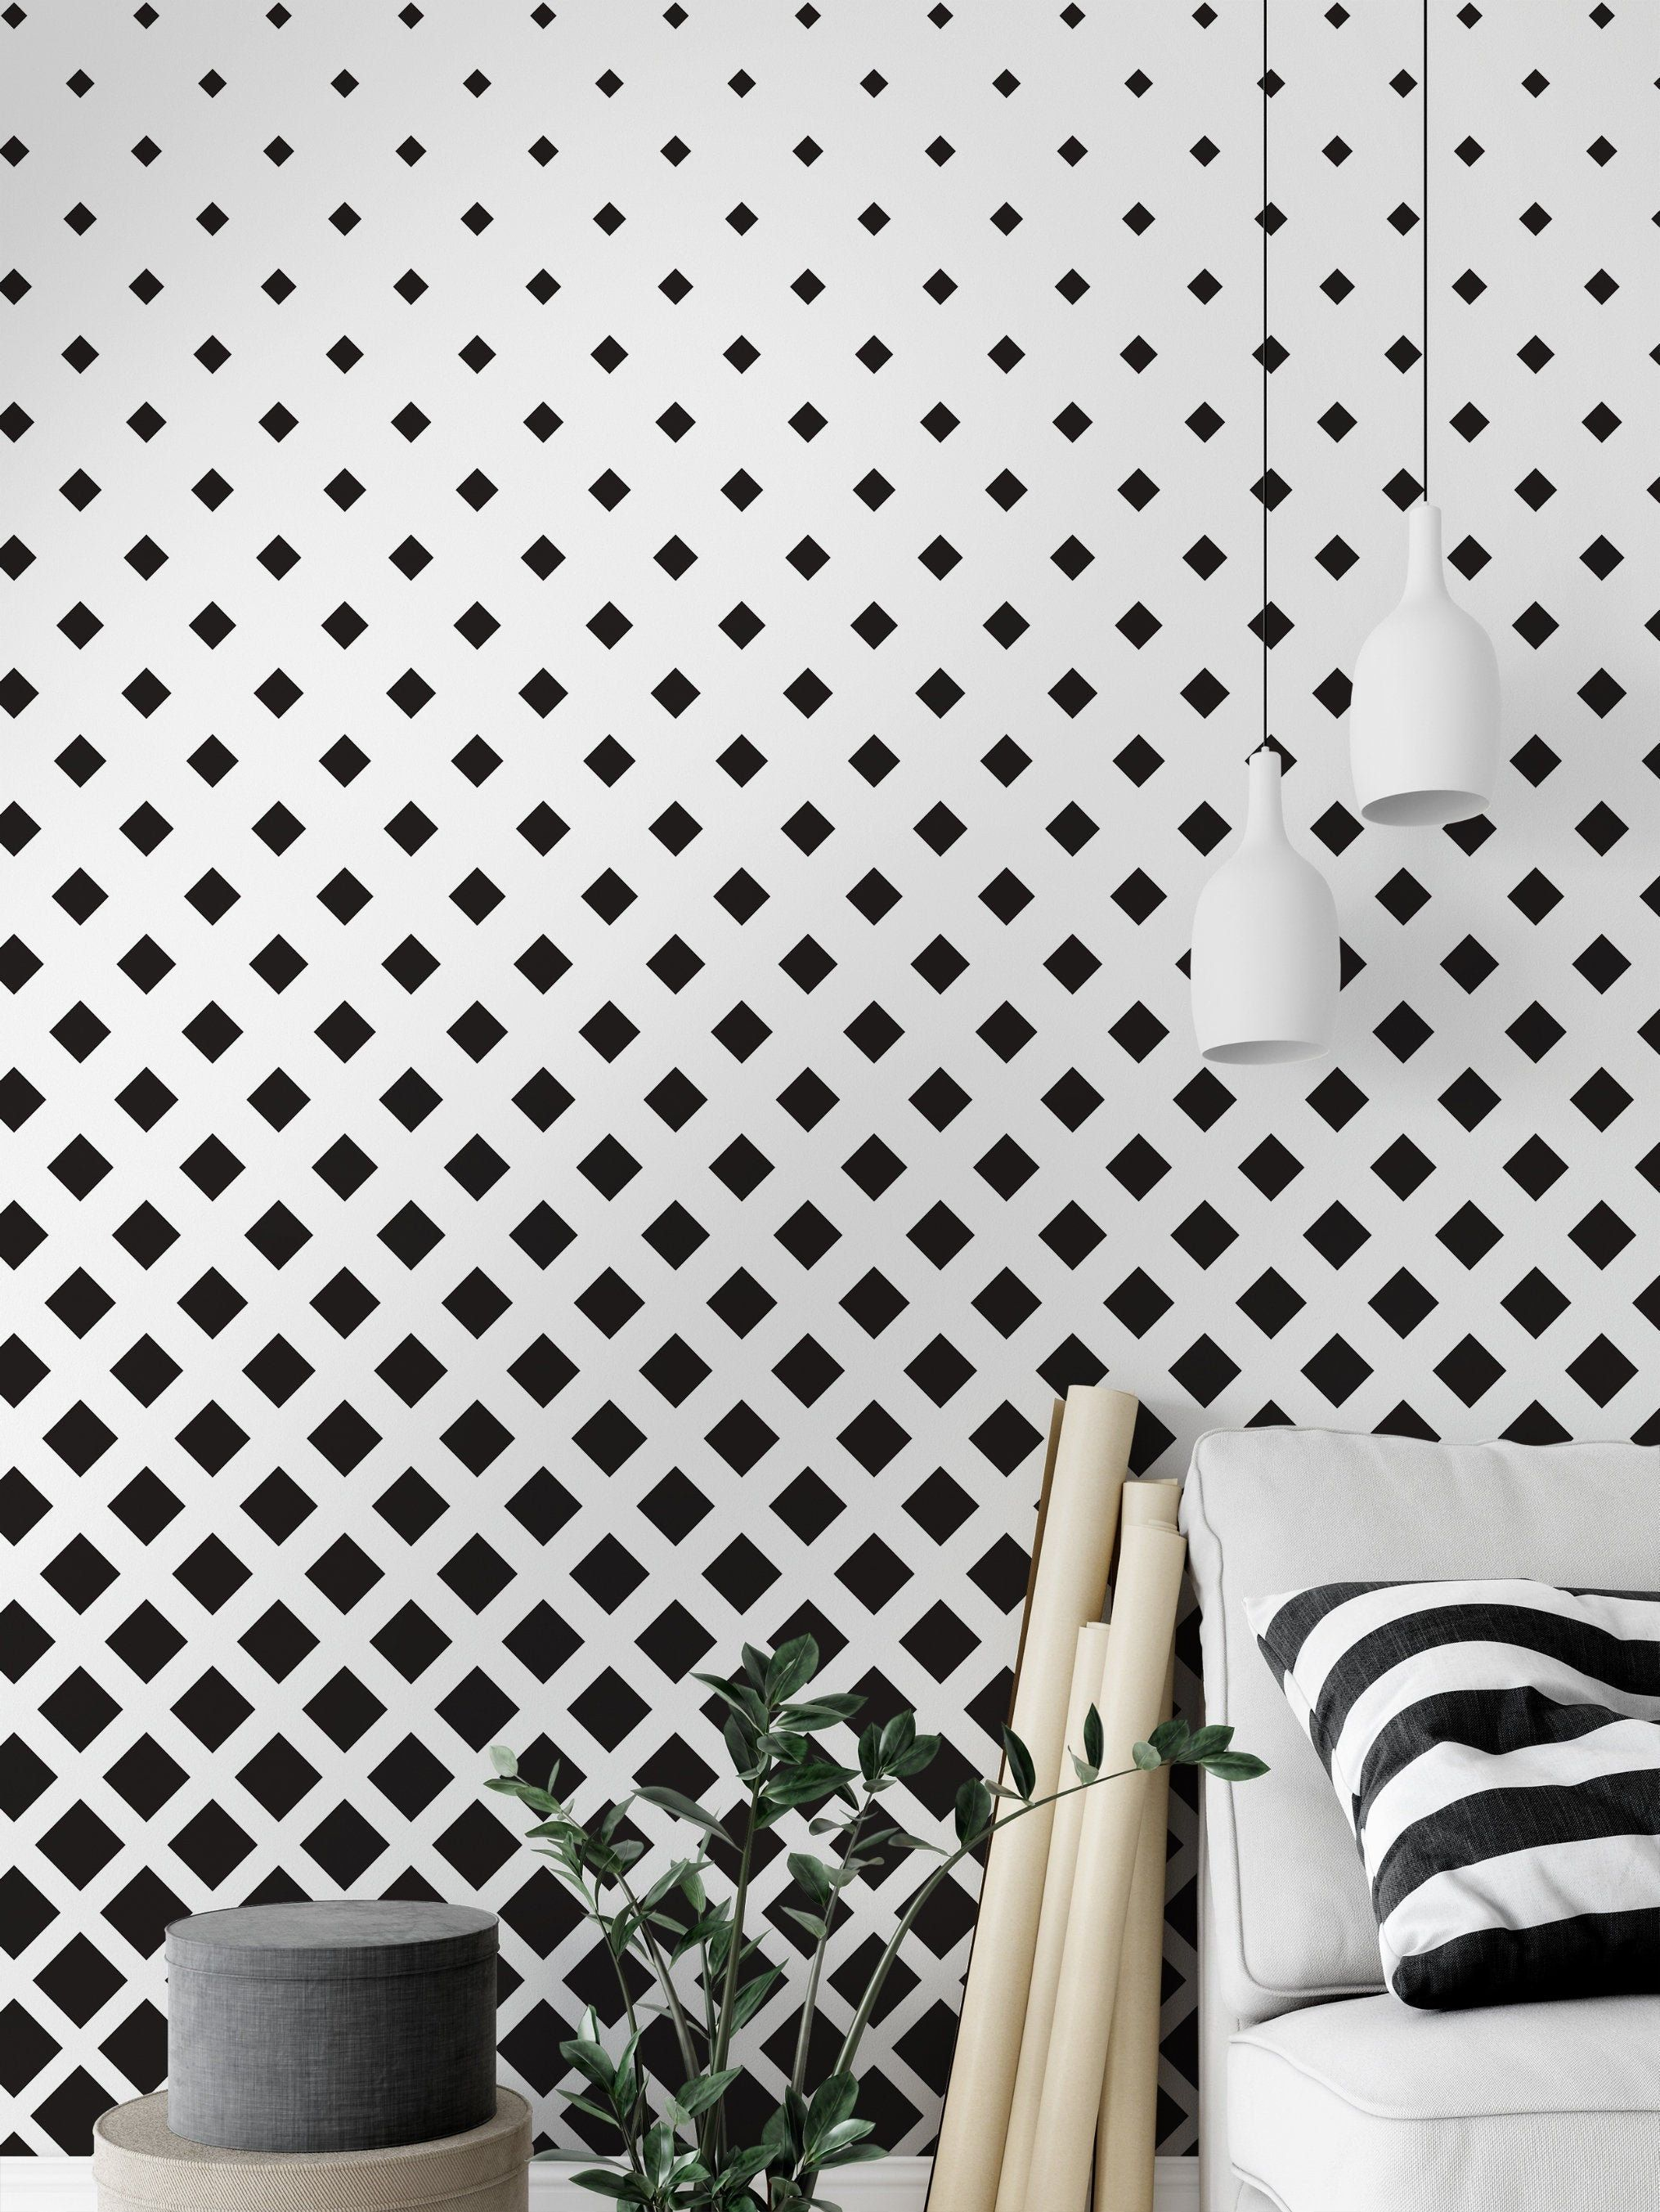 Black White Moroccan Design Removable Wallpaper Peel And Etsy Moroccan Design Self Adhesive Wallpaper Moroccan Wallpaper